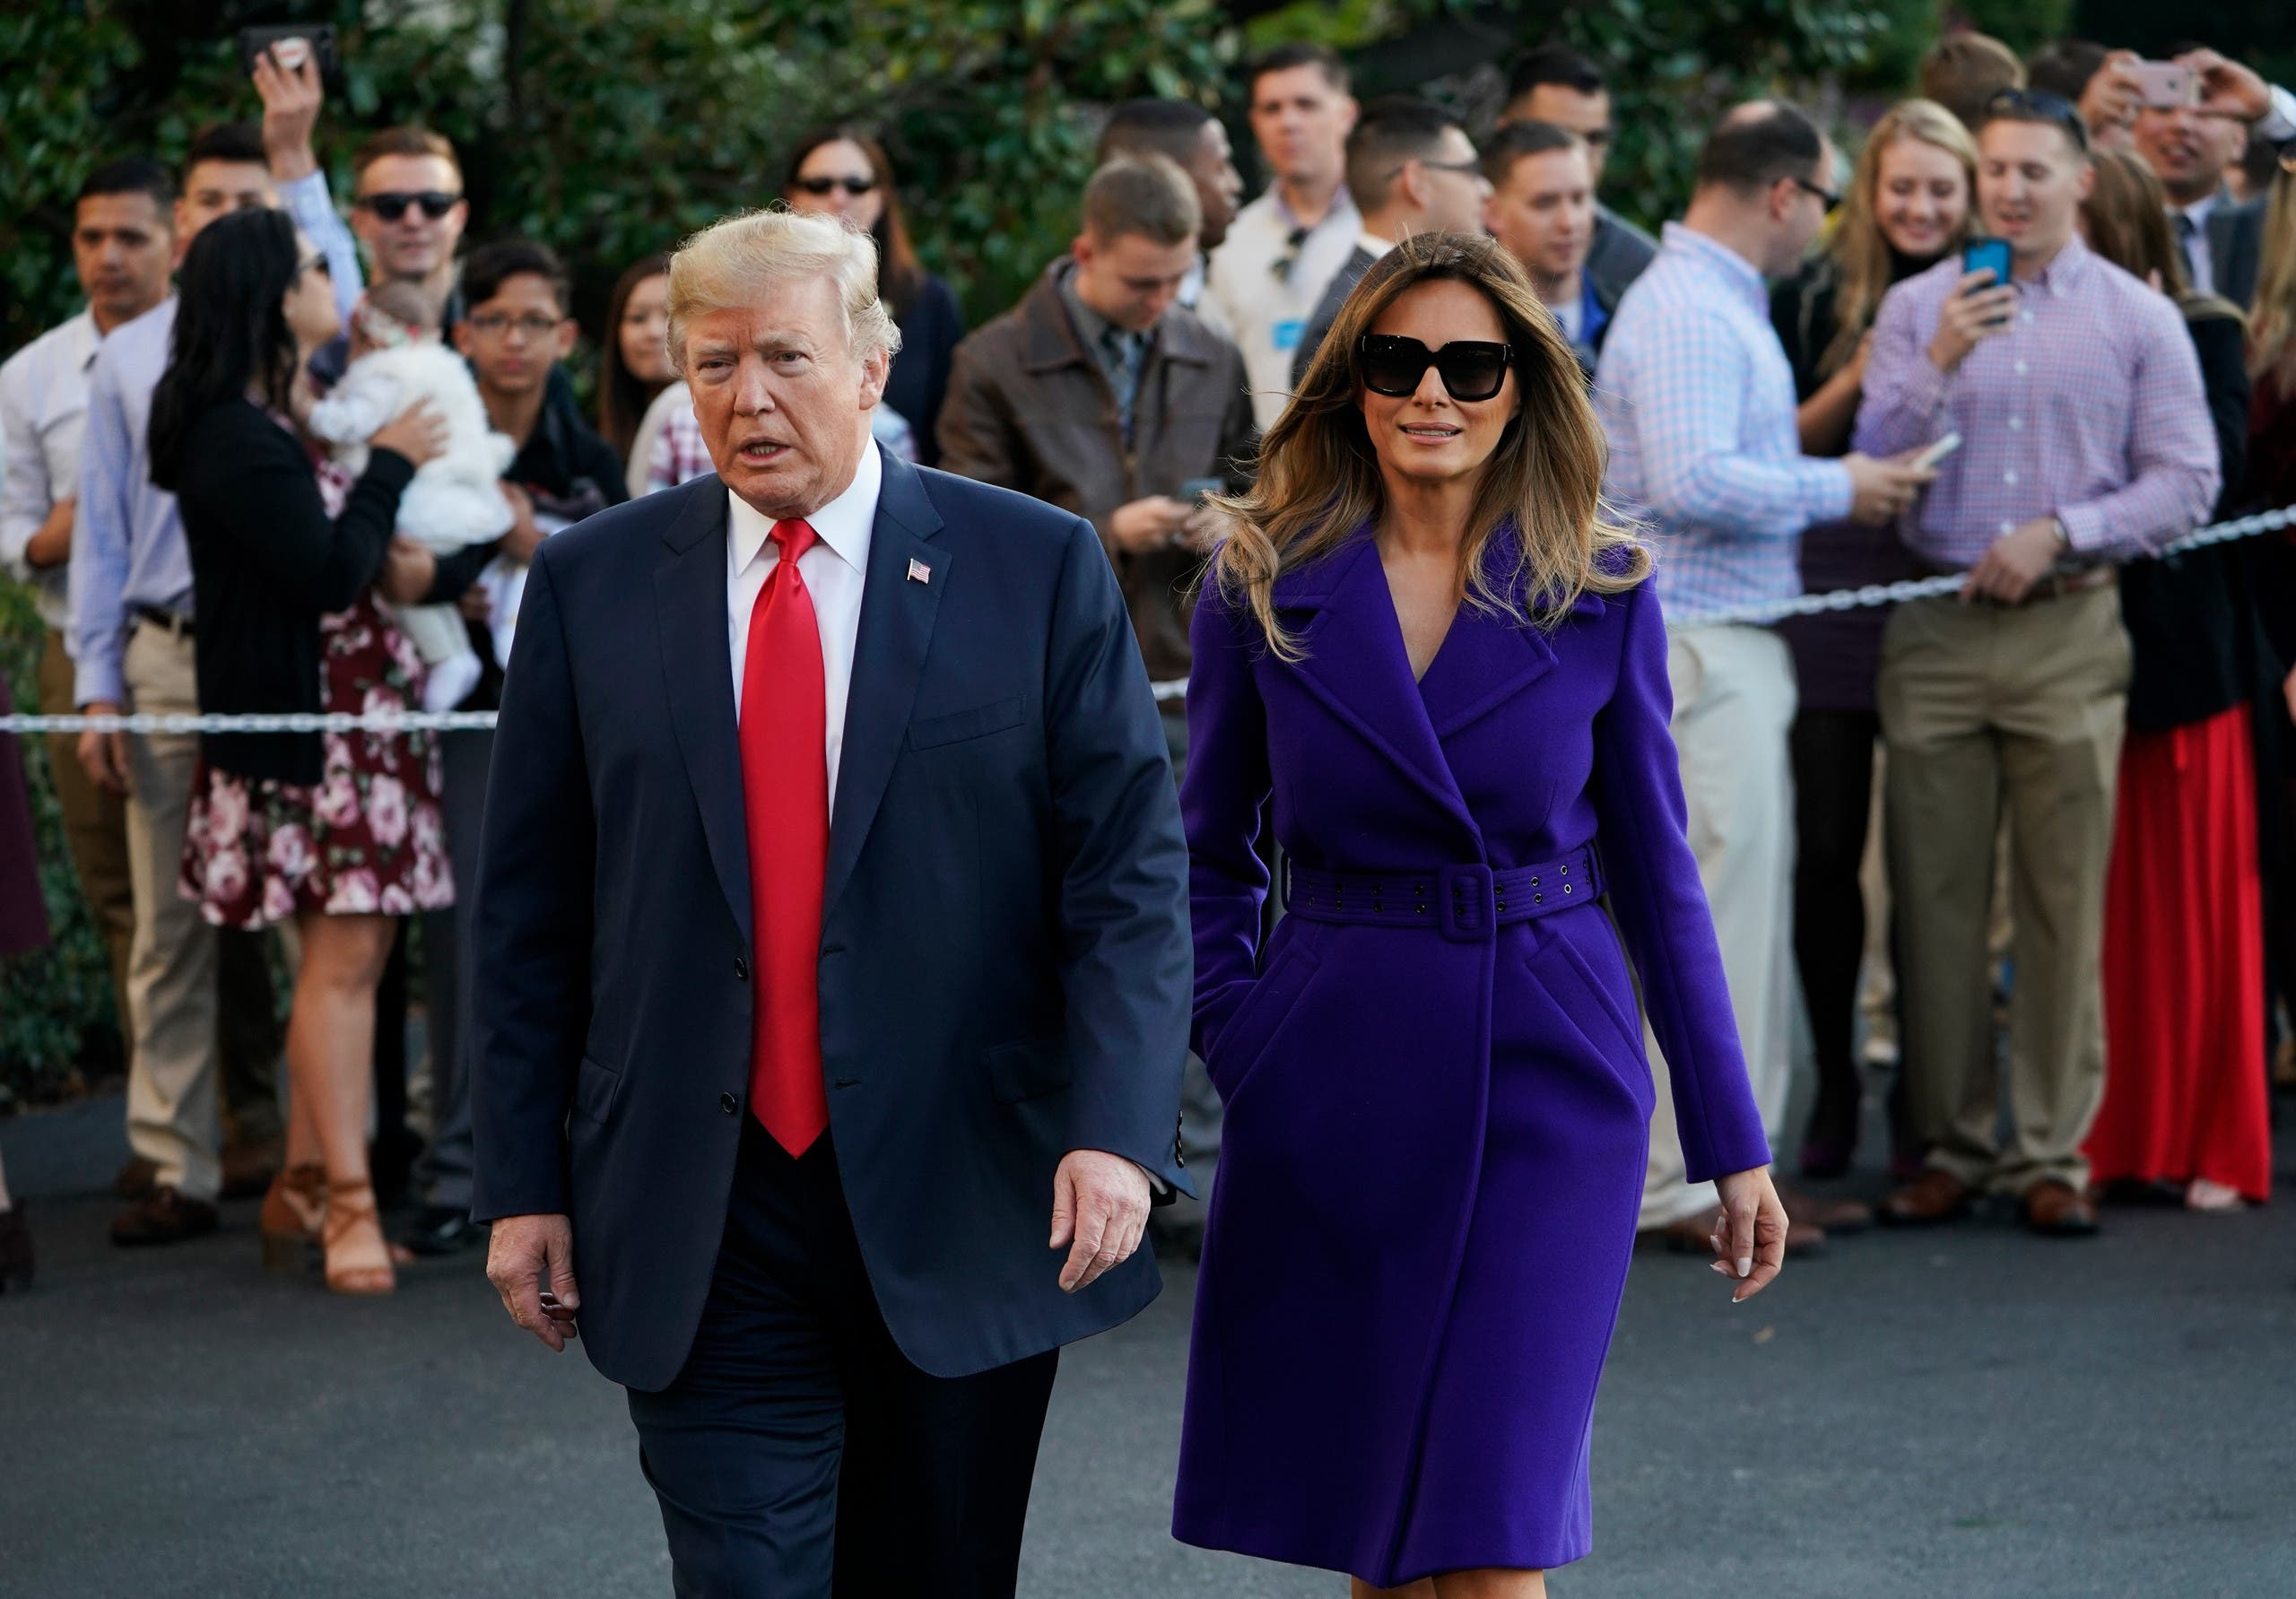 US President Donald Trump and First Lady Melania Trump walk towards reporters before departing from the South Lawn of the White House. (AFP)